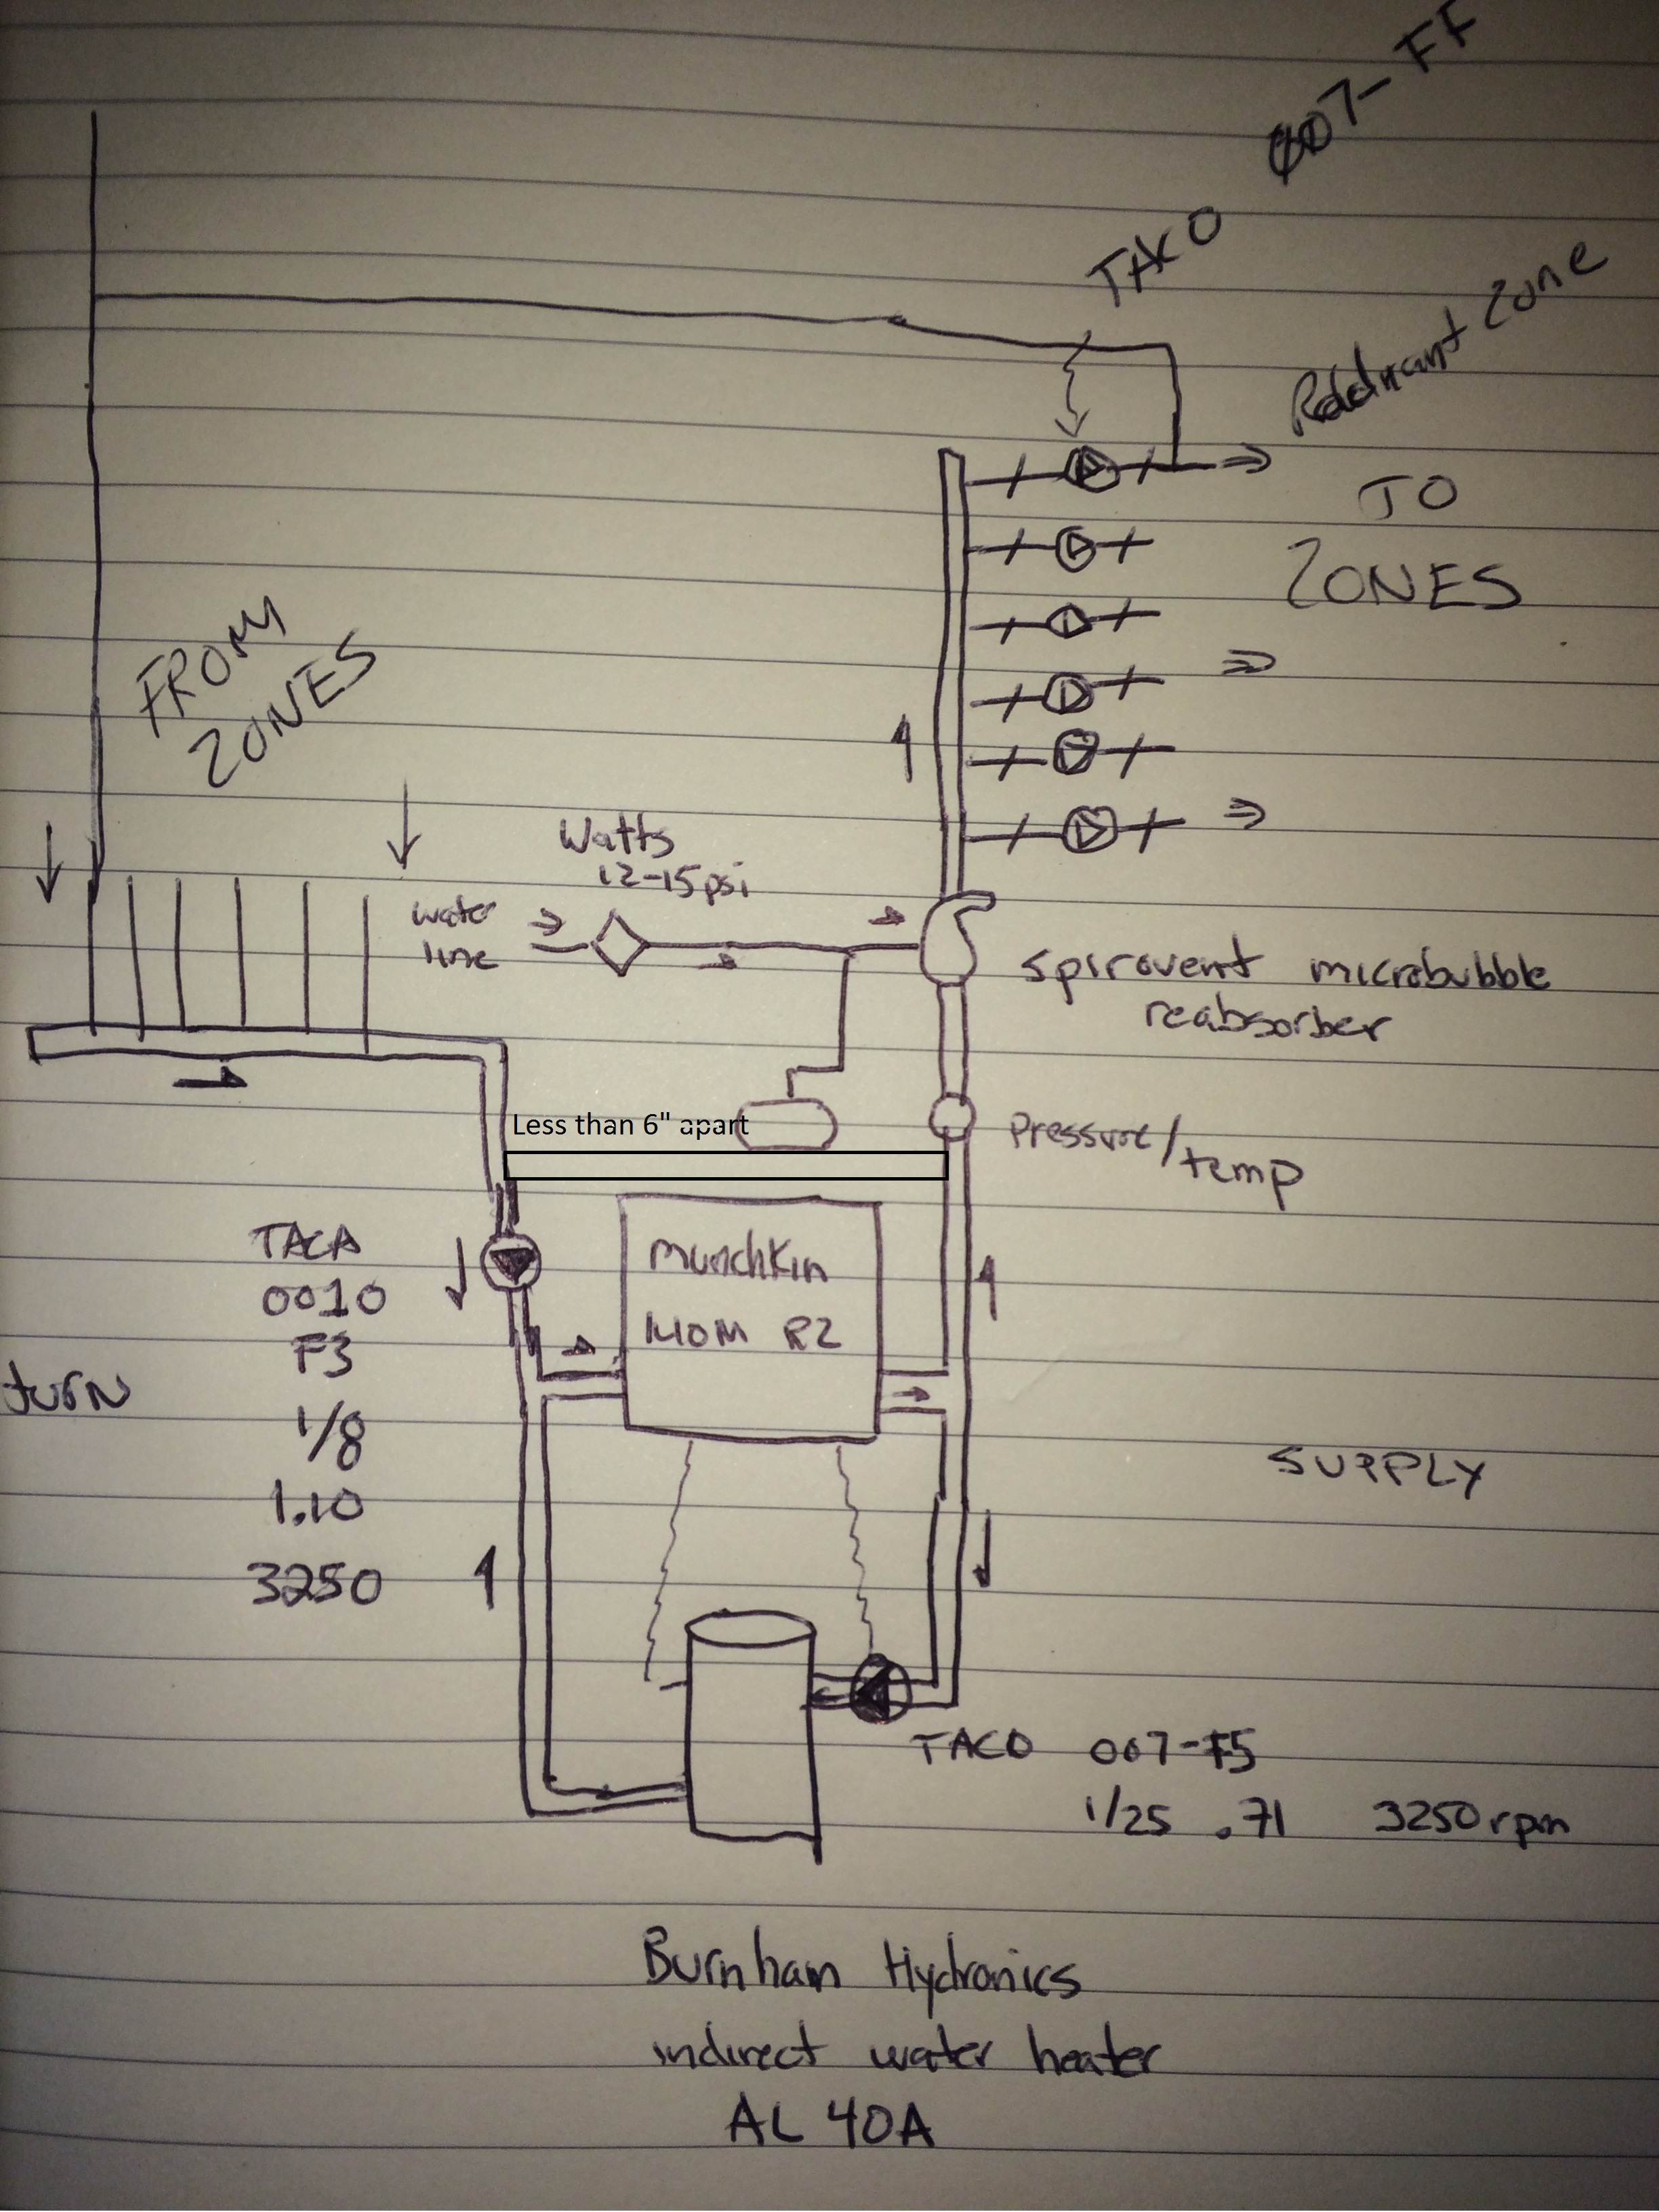 Adding A Radiant Zone Do I Need Control Unit Relay Or 110v Taco Circulator 00 Series Wiring Diagram Img 0734